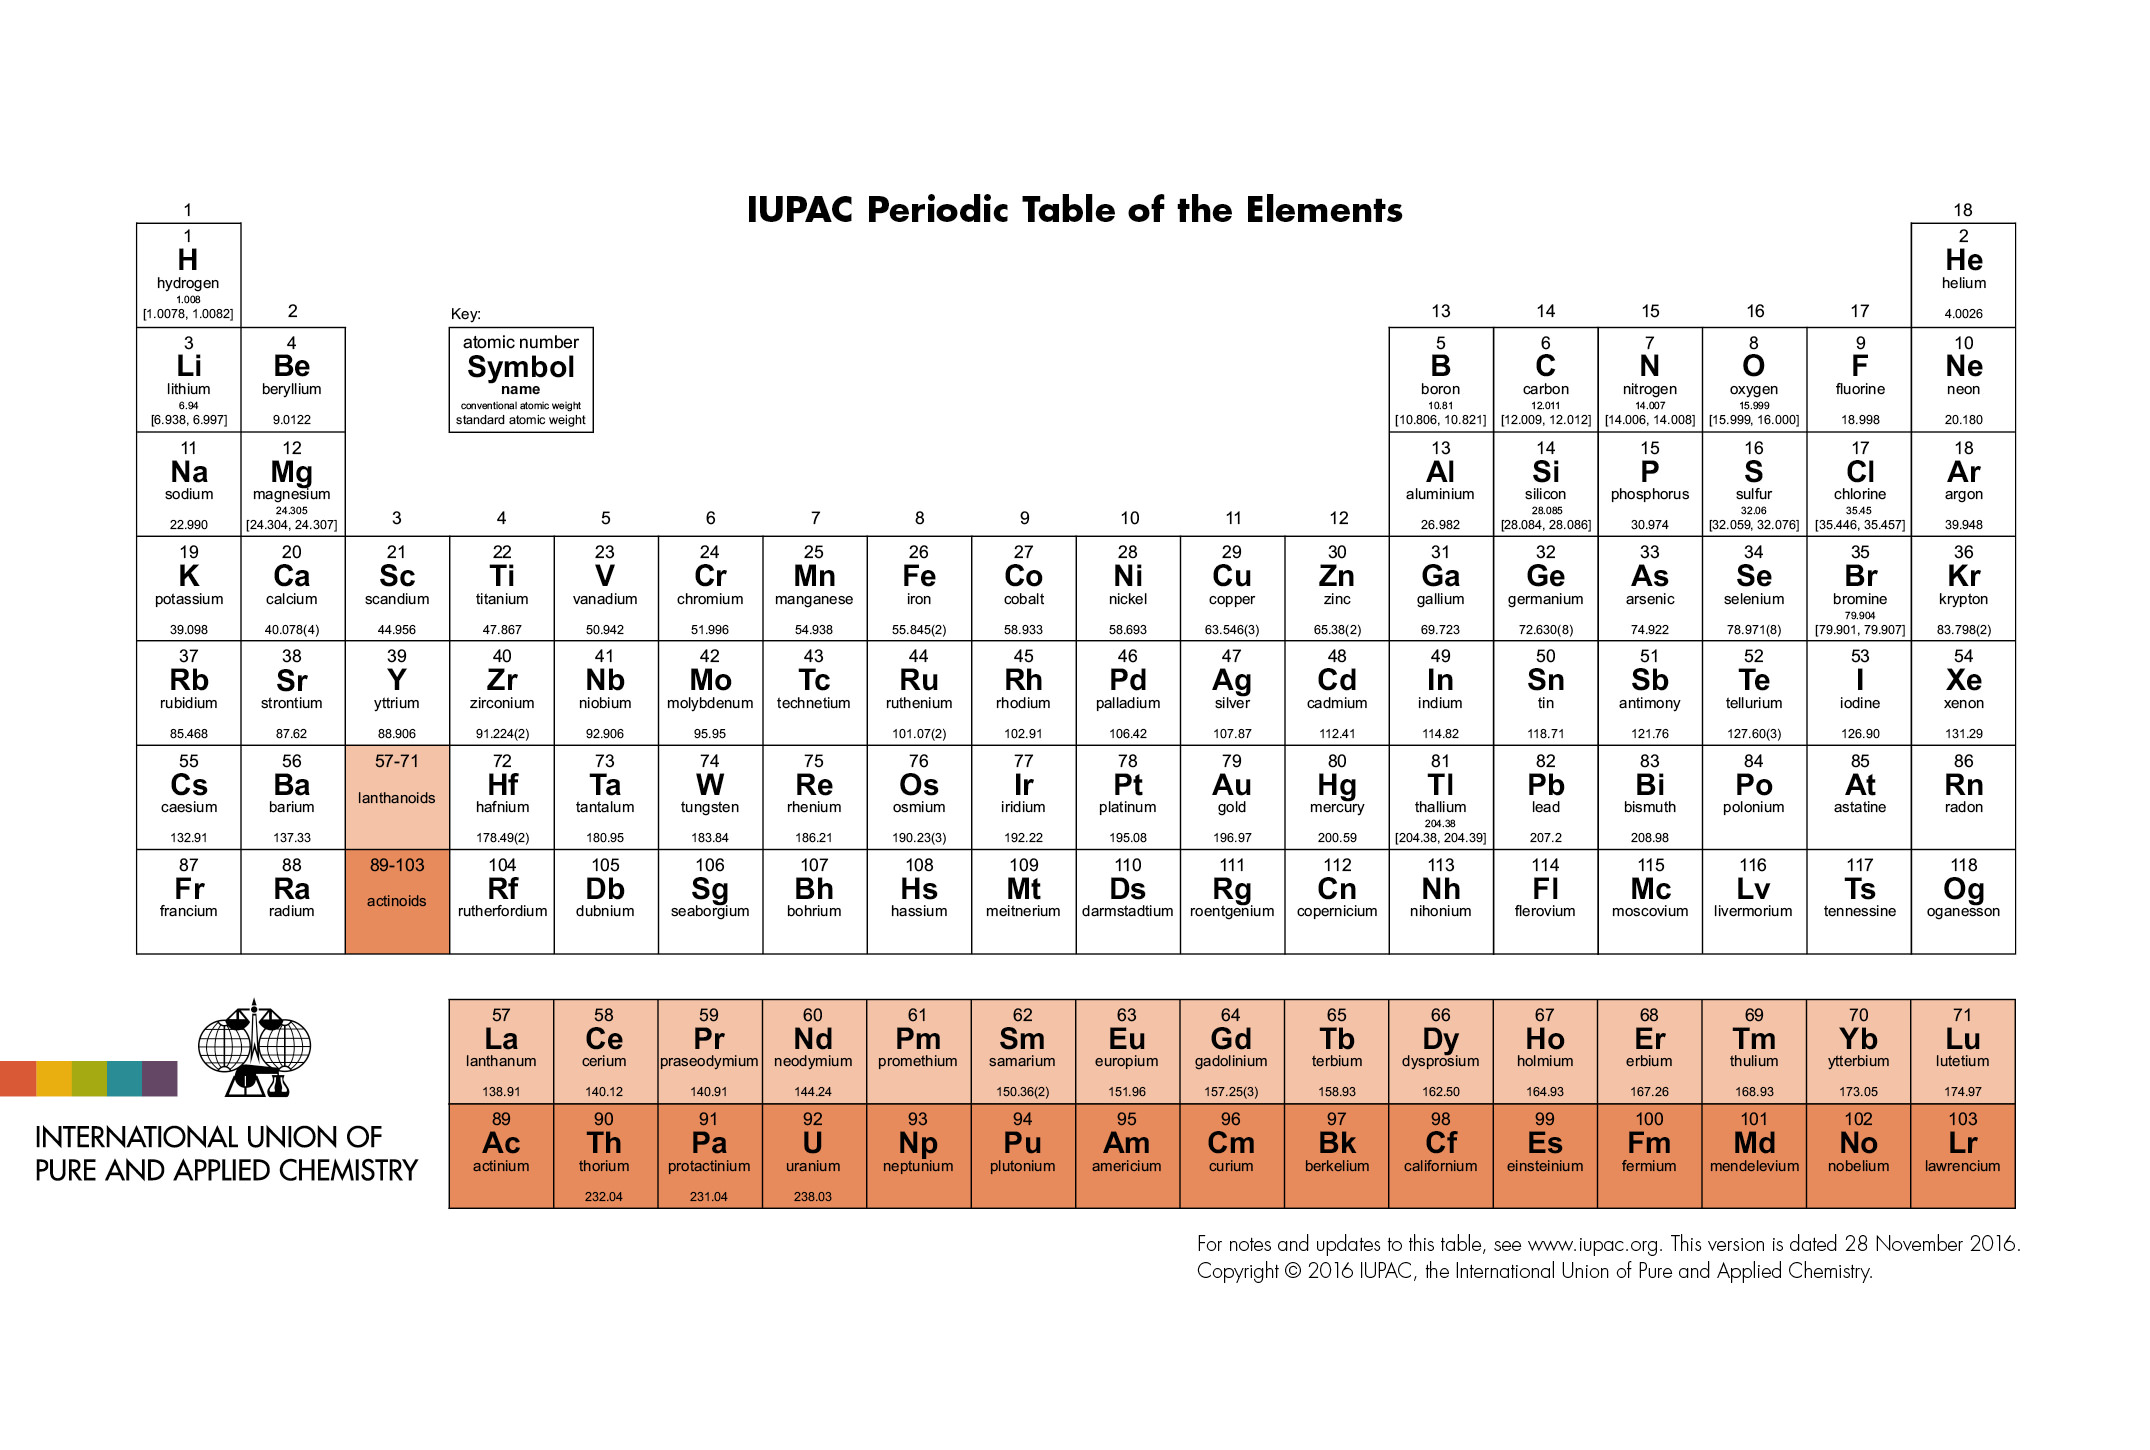 Iupac international union of pure and applied chemistry periodic periodic table of elements gamestrikefo Gallery